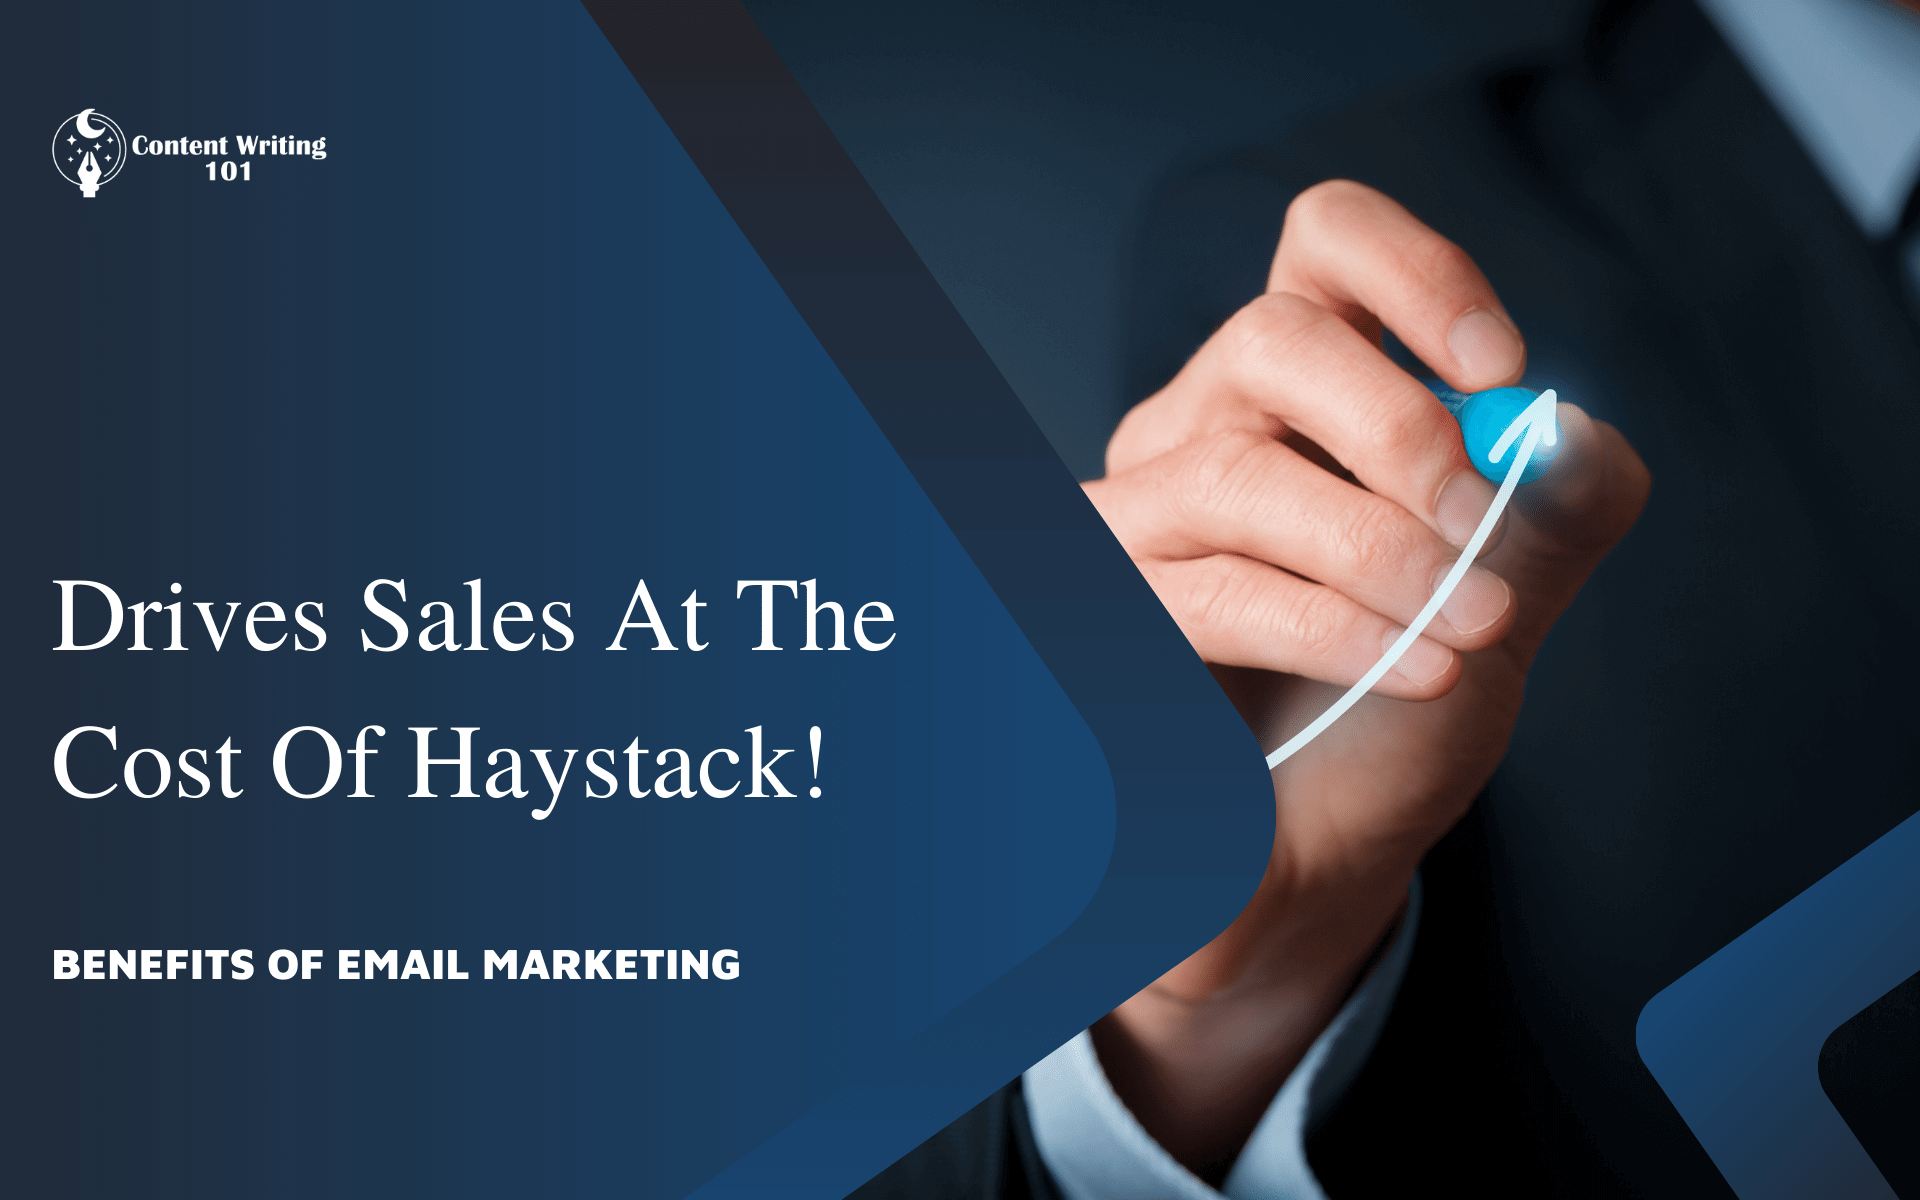 5. Drives Sales At The Cost Of Haystack!